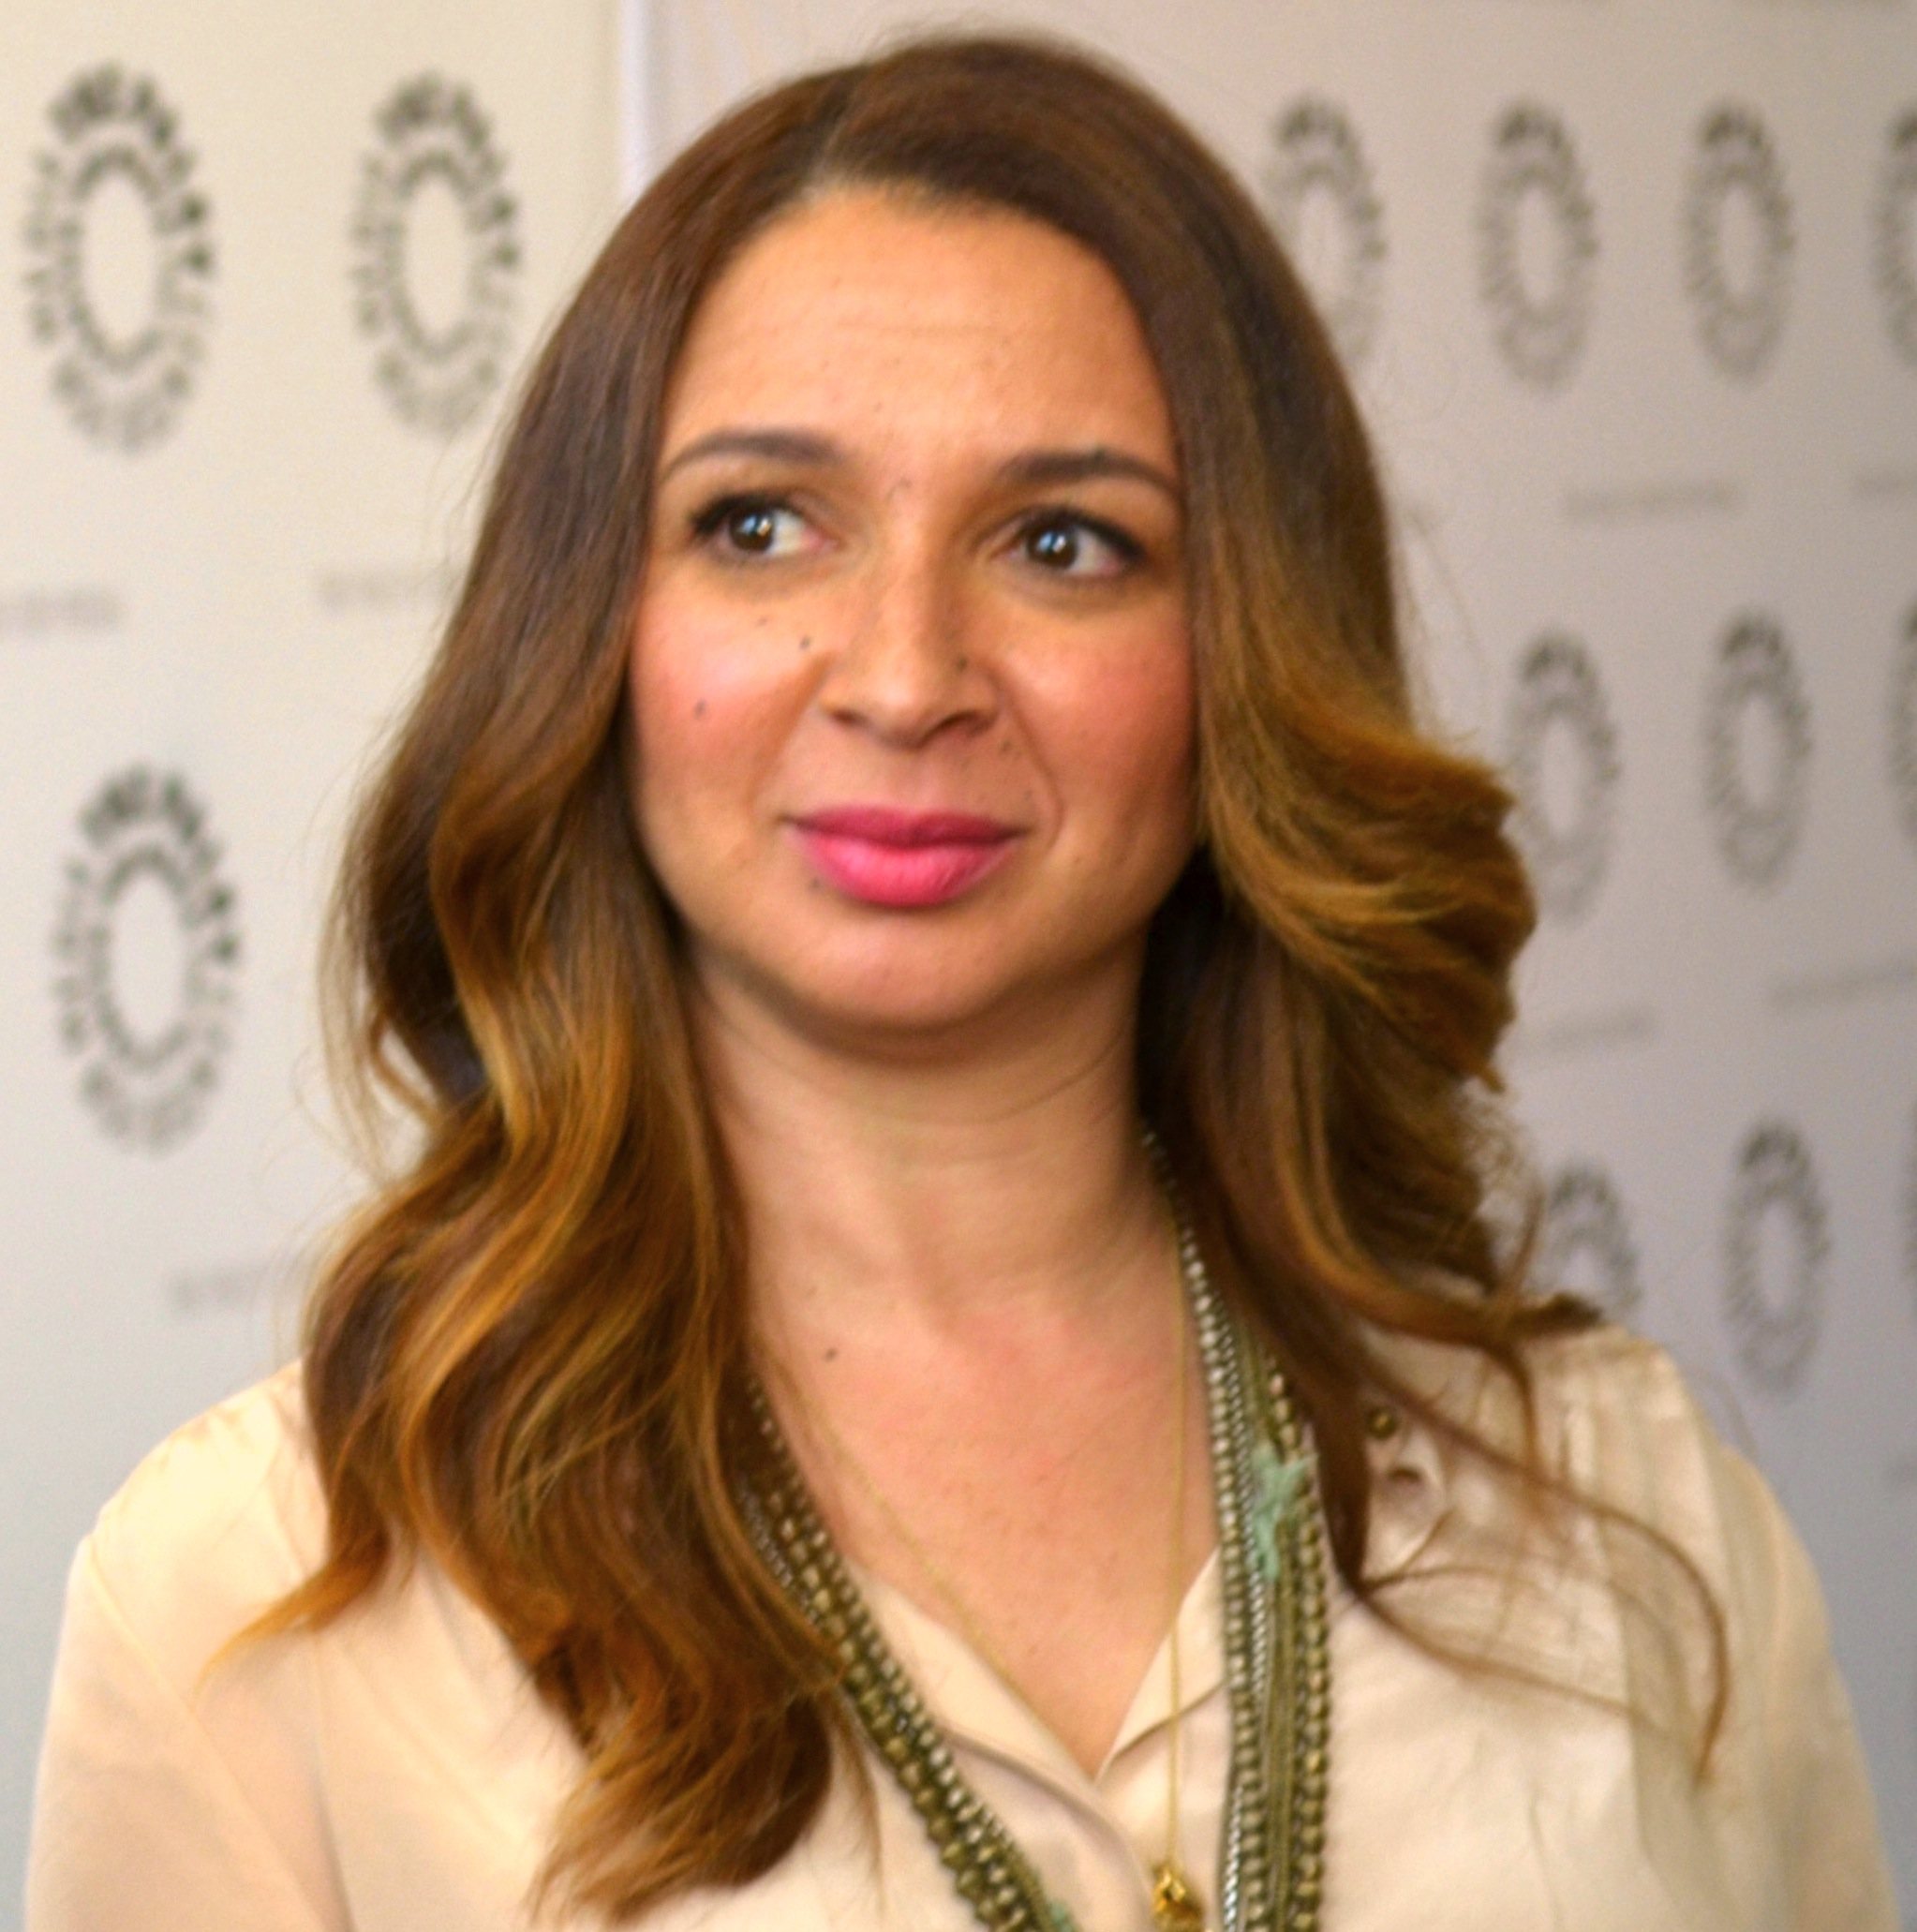 The 46-year old daughter of father Richard Rudolph and mother Minnie Riperton Maya Rudolph in 2018 photo. Maya Rudolph earned a  million dollar salary - leaving the net worth at 4 million in 2018